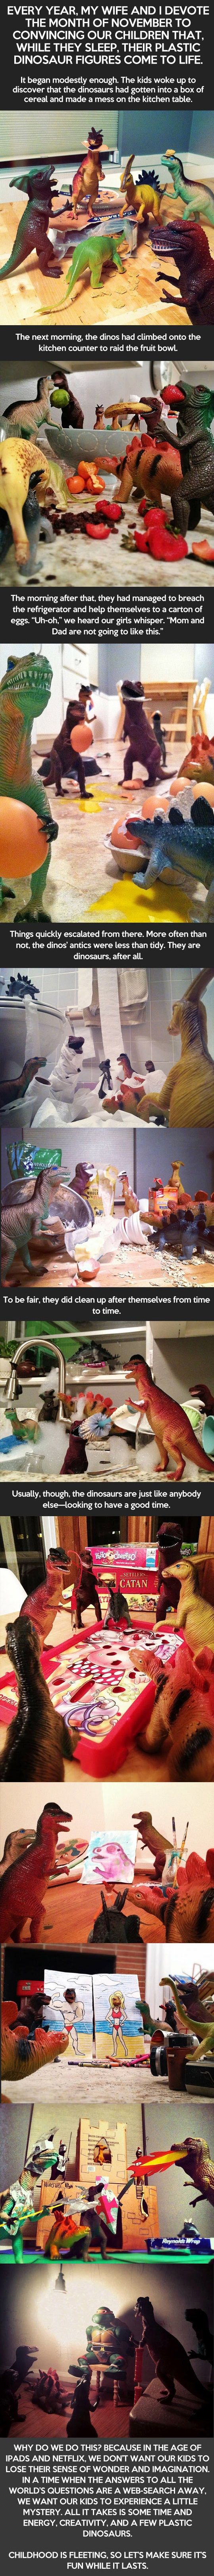 dinosaurs-come-to-life